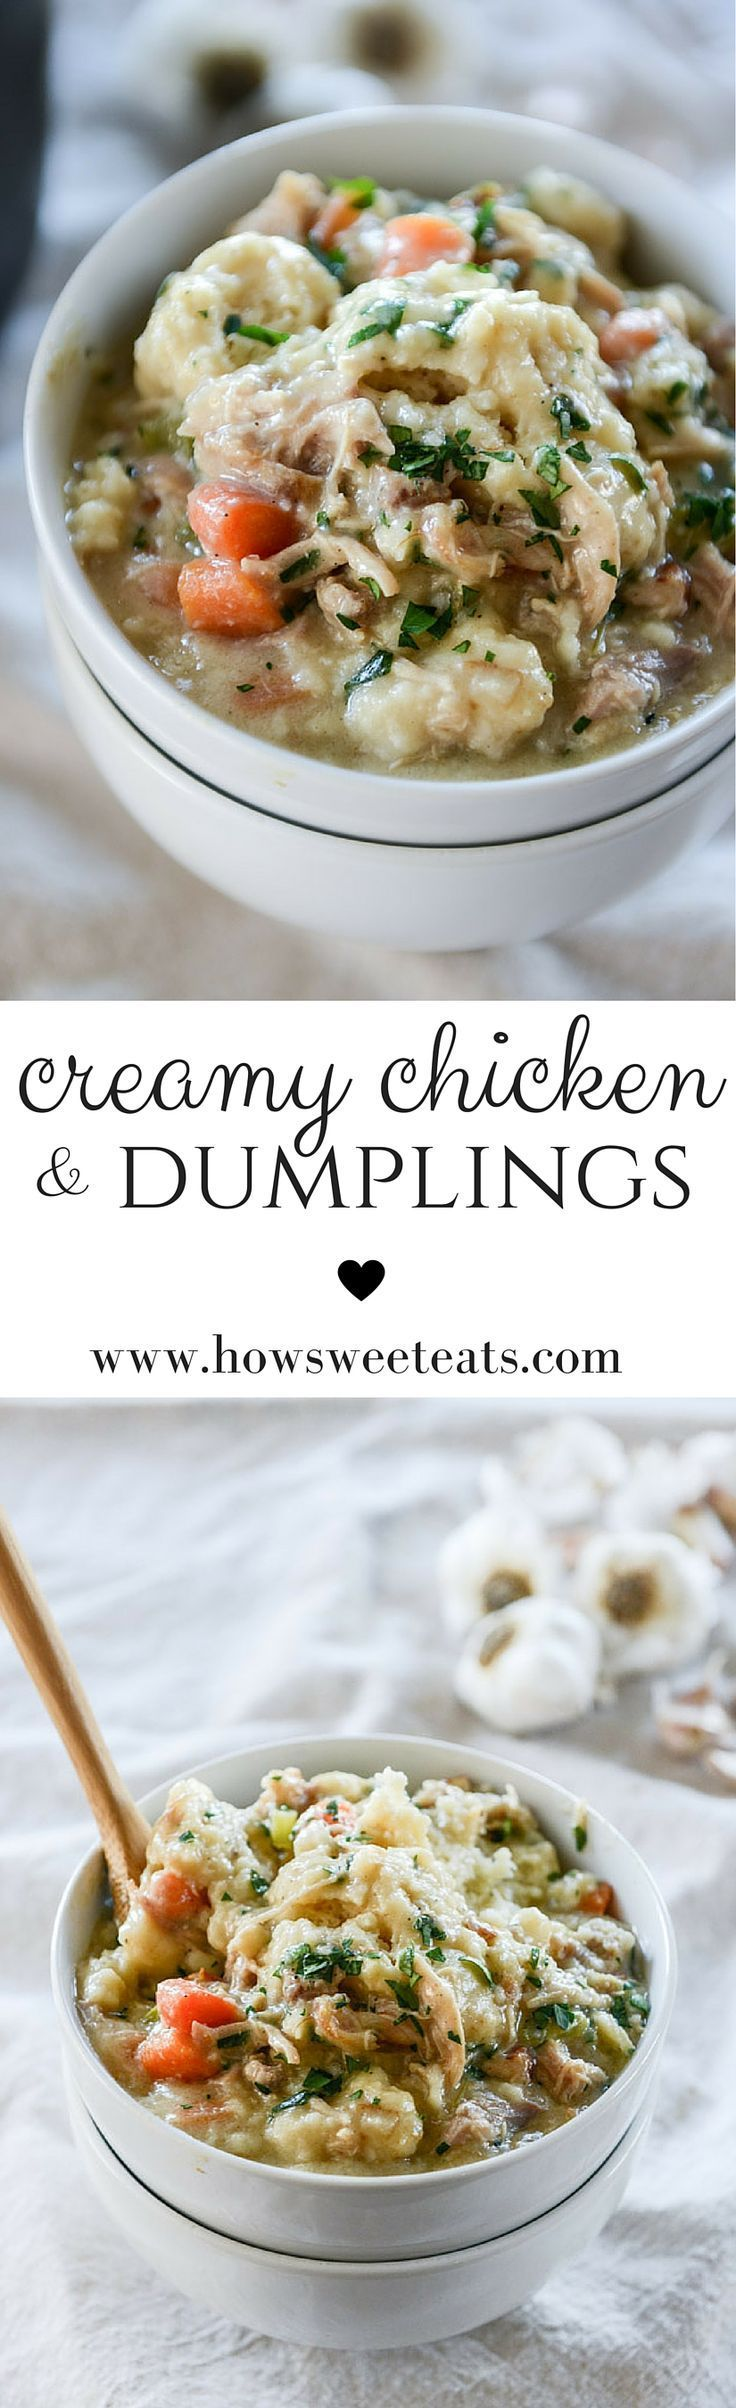 Creamy Chicken and Dumplings by /howsweeteats/ I http://howsweeteats.com